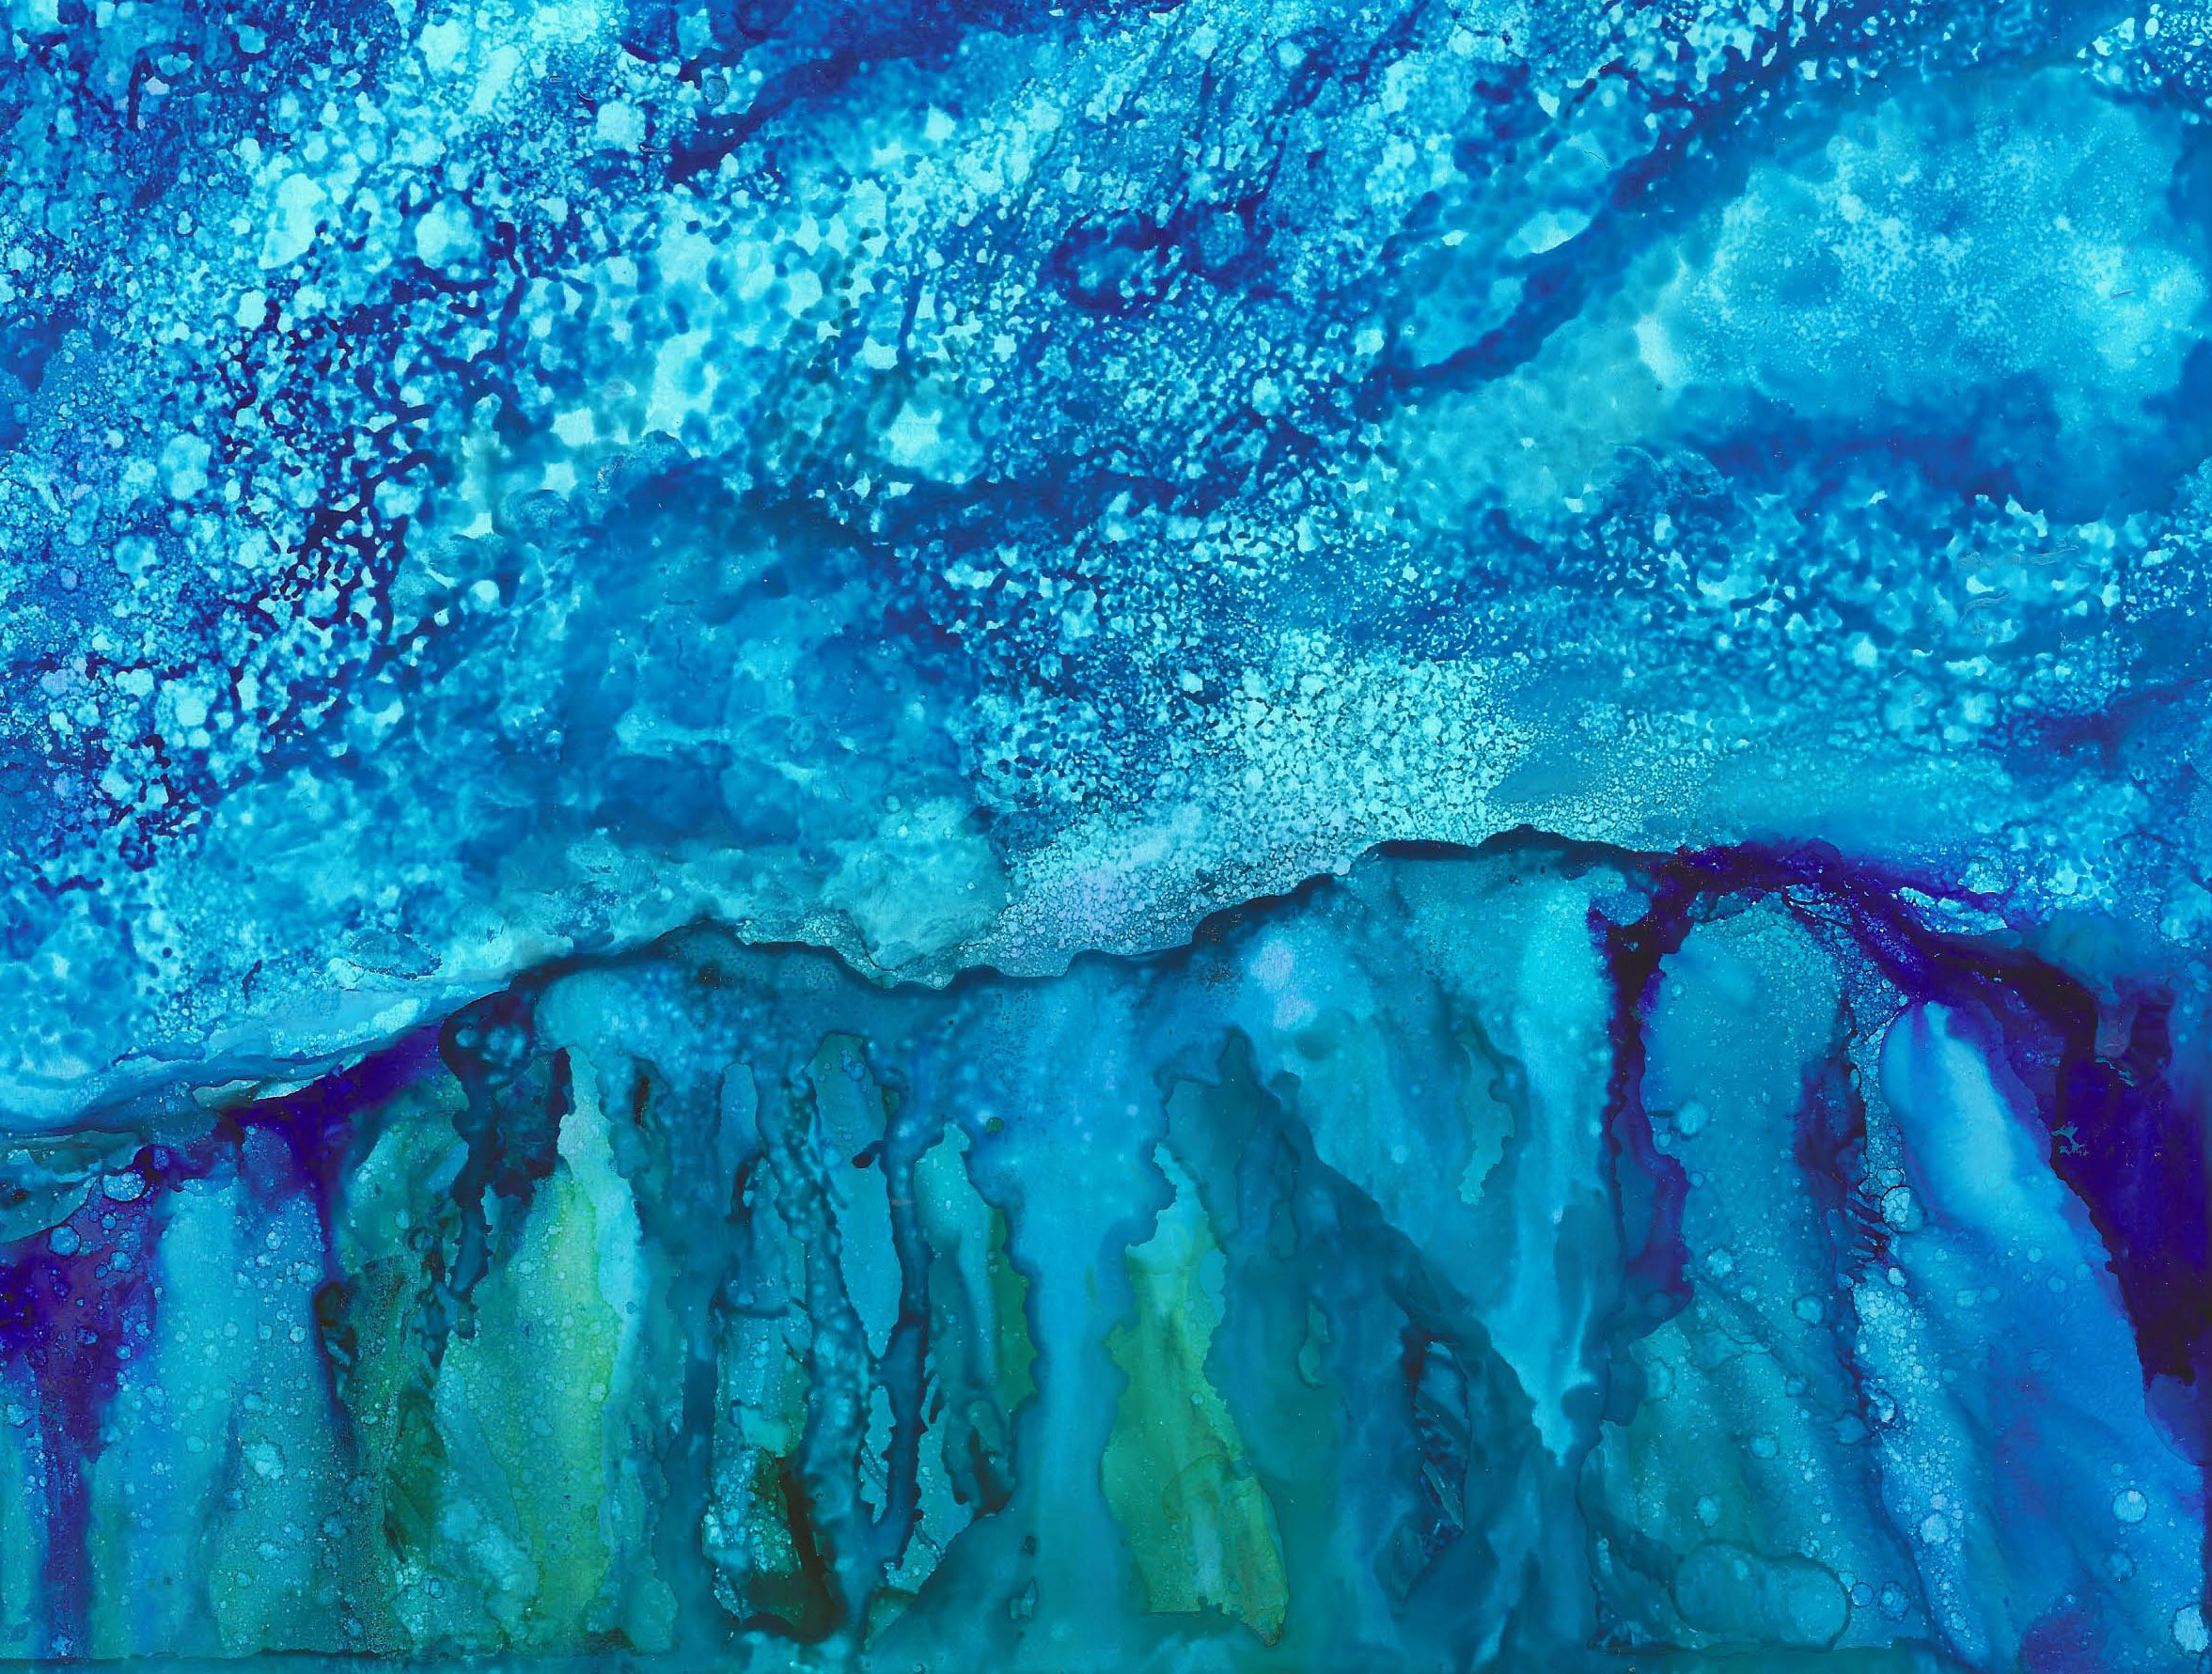 Starlight Mountains - Alcohol Ink 9 X 12 $130 - Sold